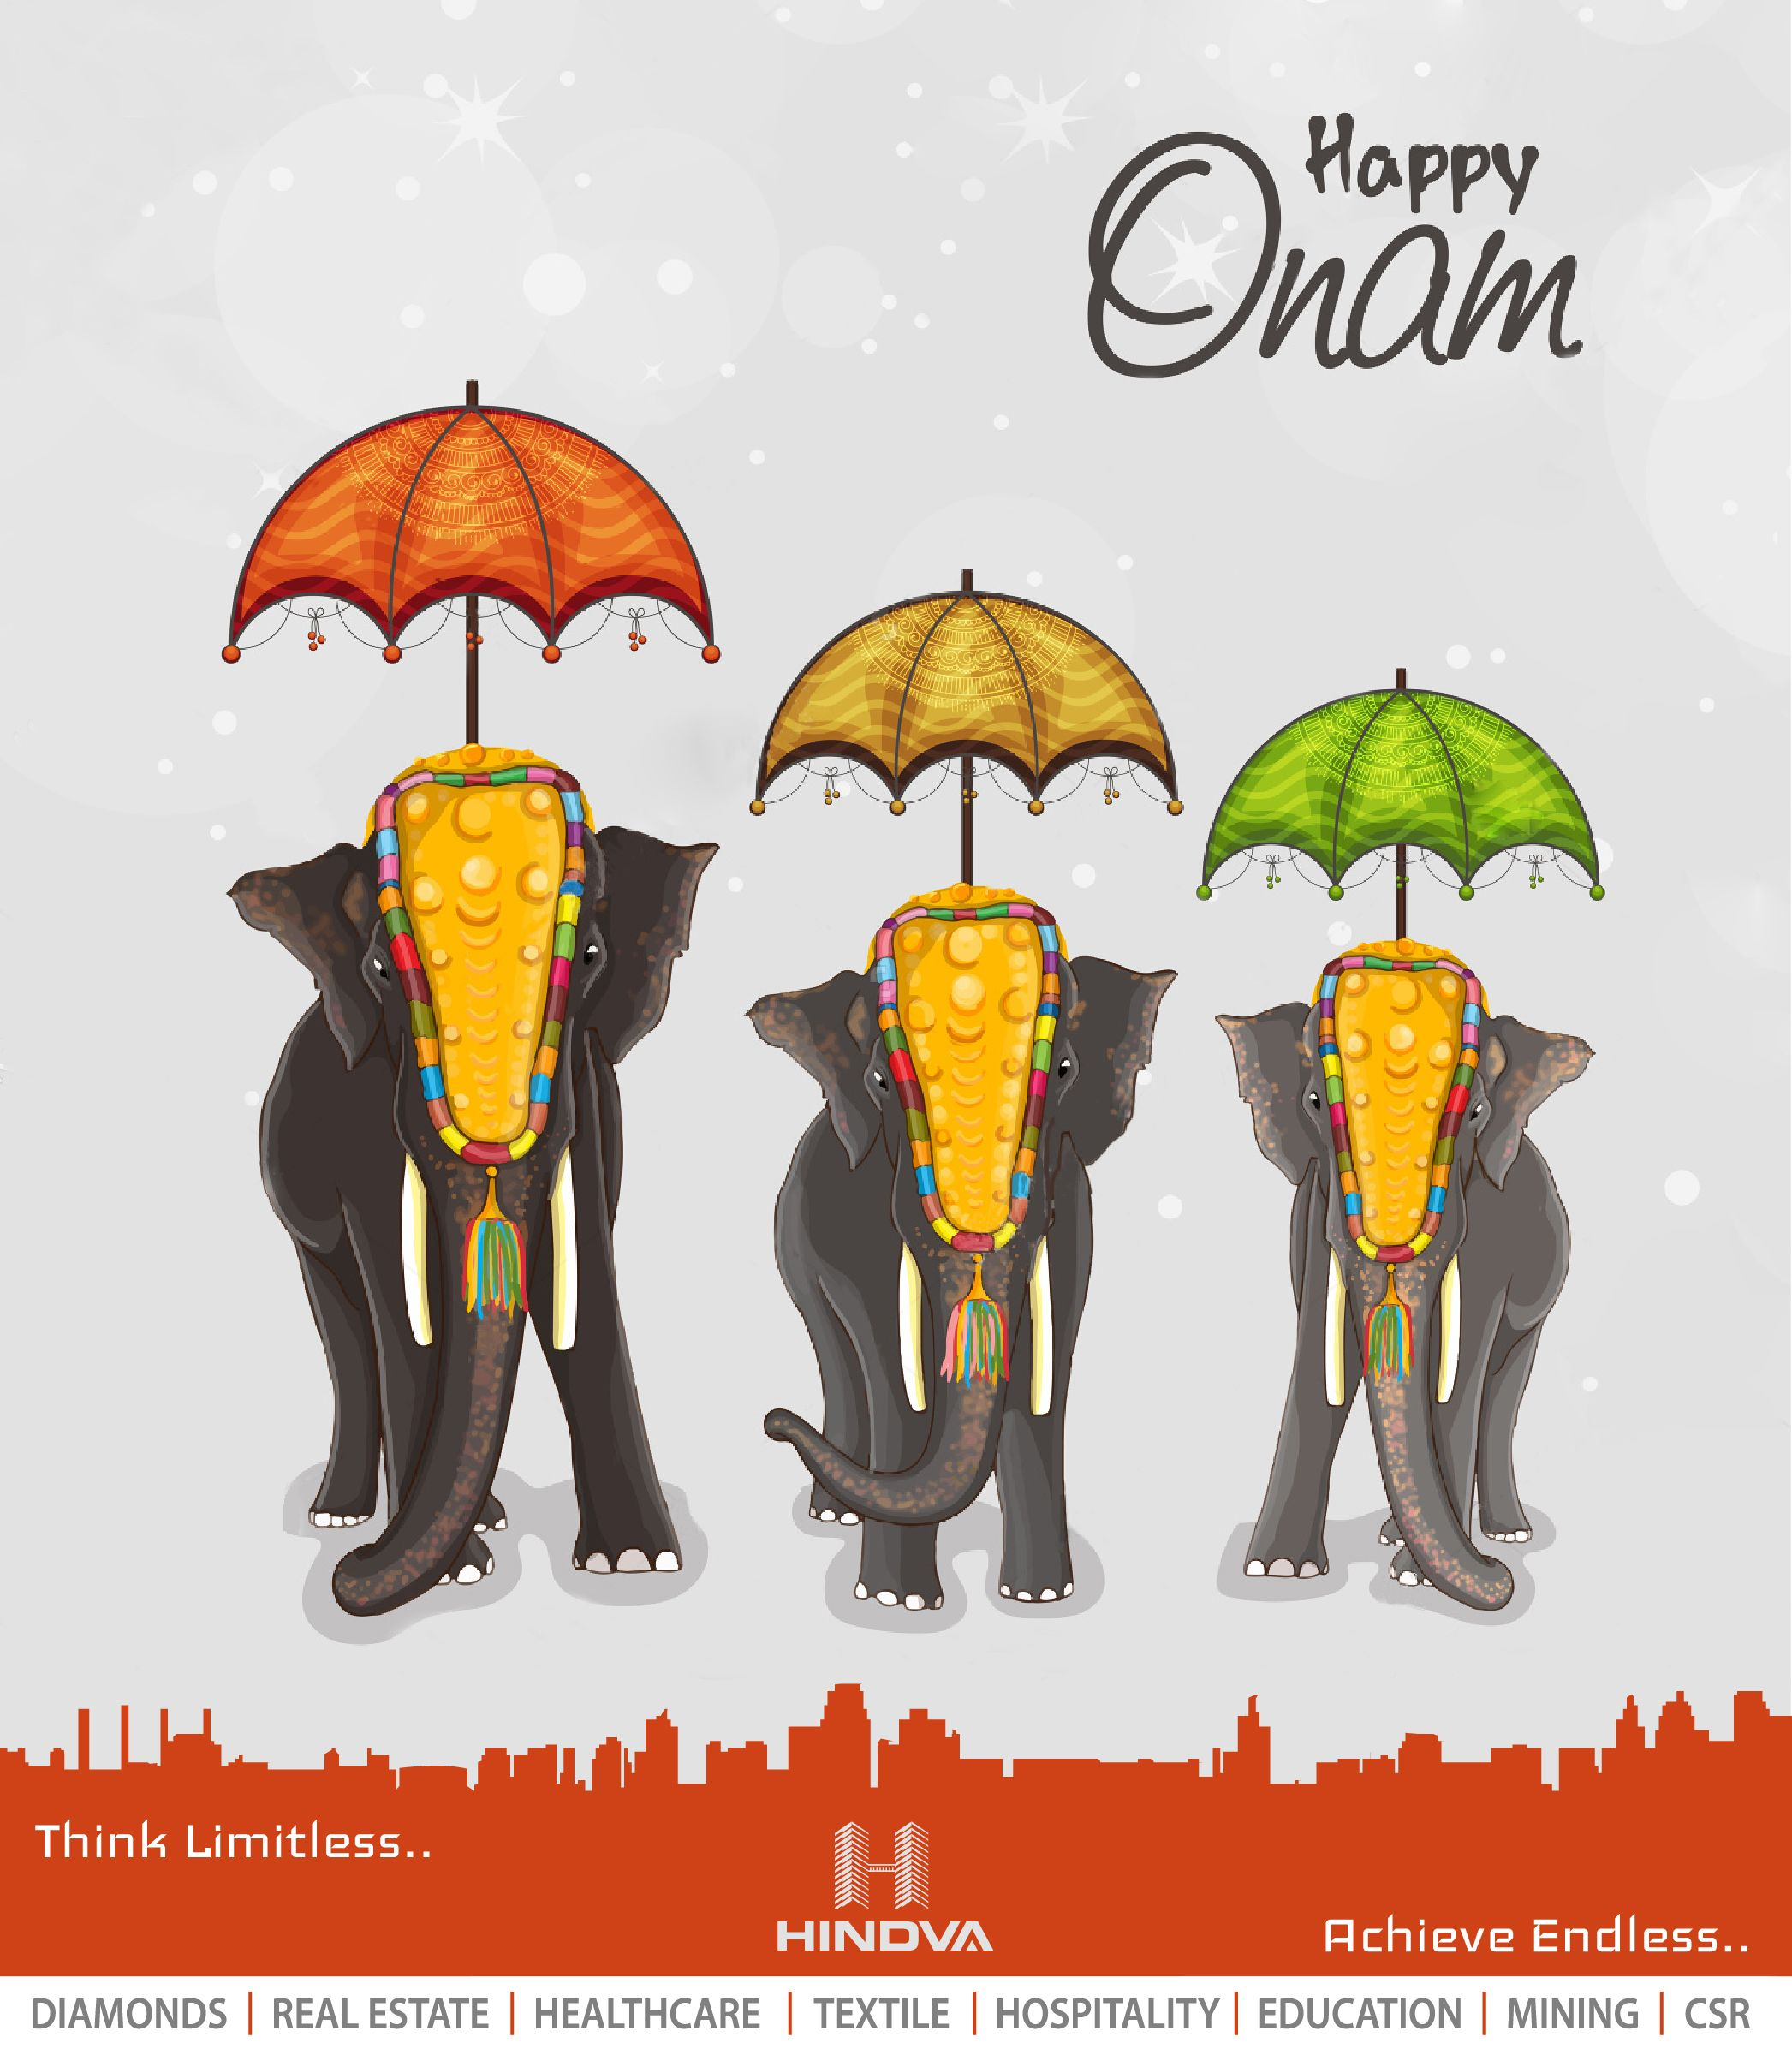 Hindva Wishes You A Very Happy And Prosperous Onam Happy Onam